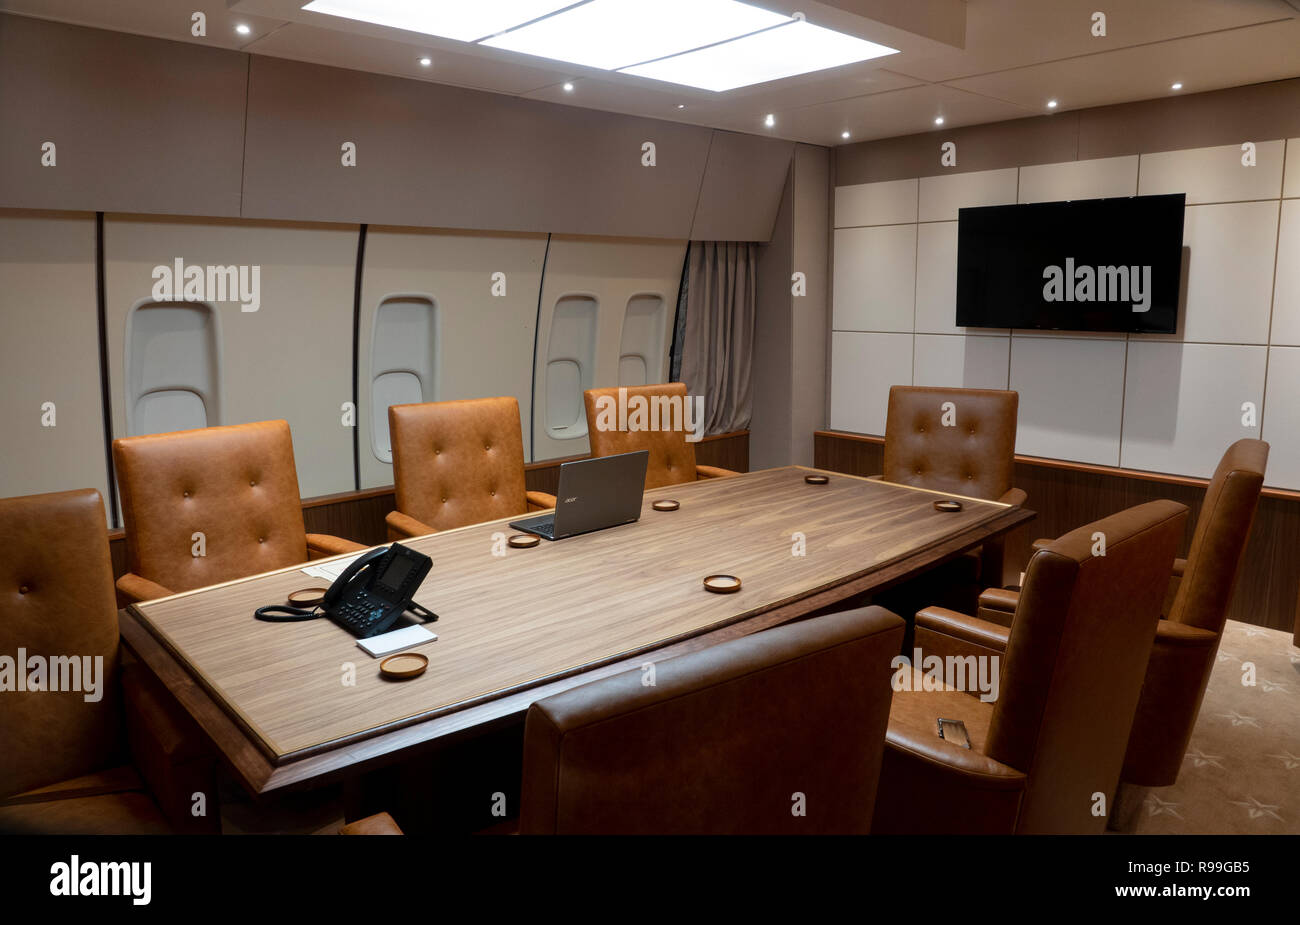 Air Force One Replica Mock Up Of The Interior Of The United States Presidential Aircraft Boeing 747 Office Meeting Desk Stock Photo Alamy